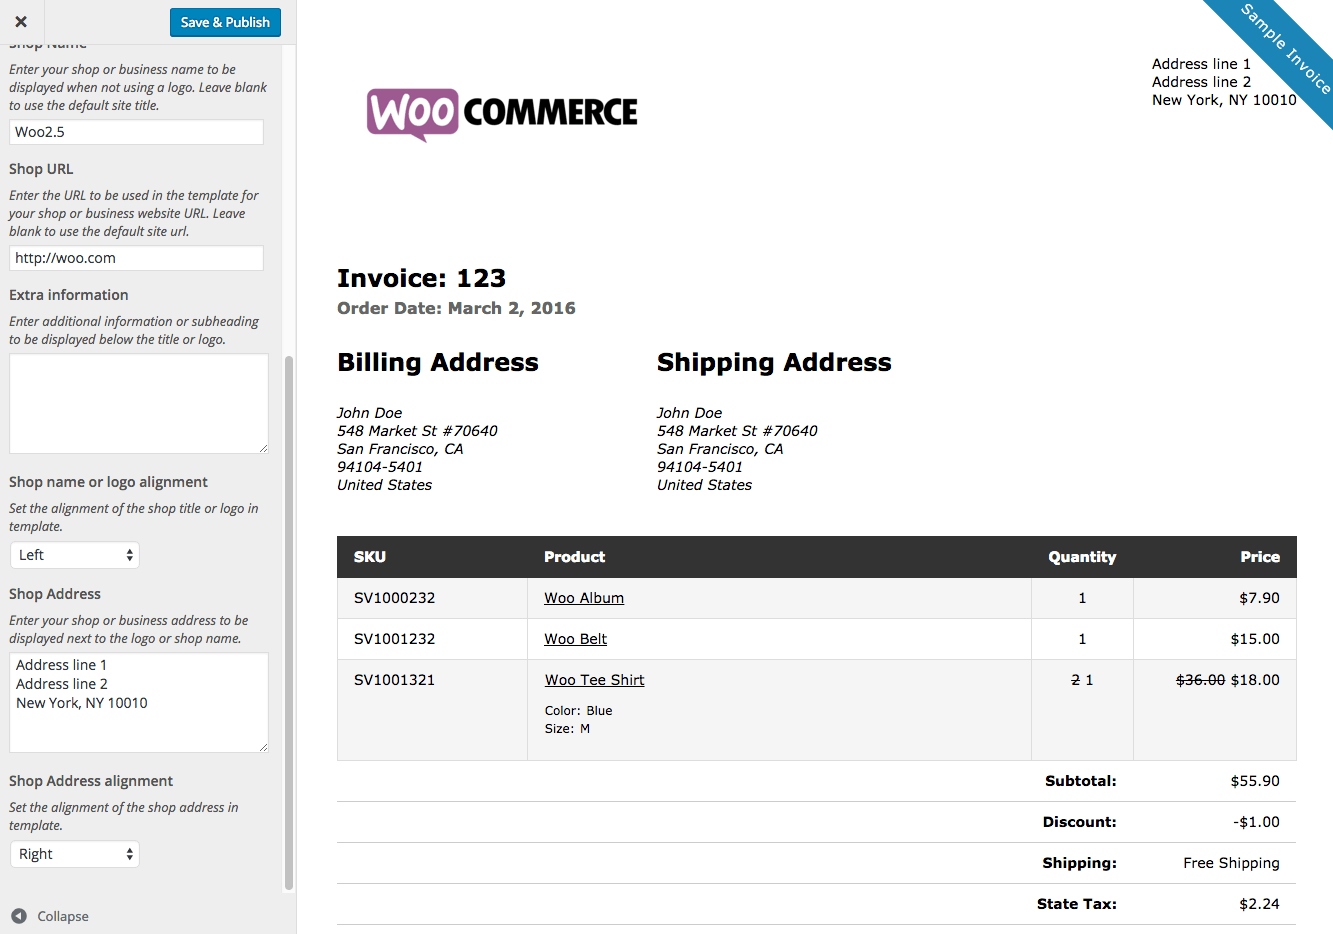 Opposenewapstandardsus  Terrific Woocommerce Print Invoices Amp Packing Lists  Woocommerce Docs With Goodlooking Woocommerce Print Invoices  Packing Lists Customizer With Adorable Invoice Templa Also Create Free Invoice Template In Addition Current Invoice And Msrp Price Vs Invoice Price As Well As Receipted Invoice Additionally Easy Invoice App From Docswoocommercecom With Opposenewapstandardsus  Goodlooking Woocommerce Print Invoices Amp Packing Lists  Woocommerce Docs With Adorable Woocommerce Print Invoices  Packing Lists Customizer And Terrific Invoice Templa Also Create Free Invoice Template In Addition Current Invoice From Docswoocommercecom